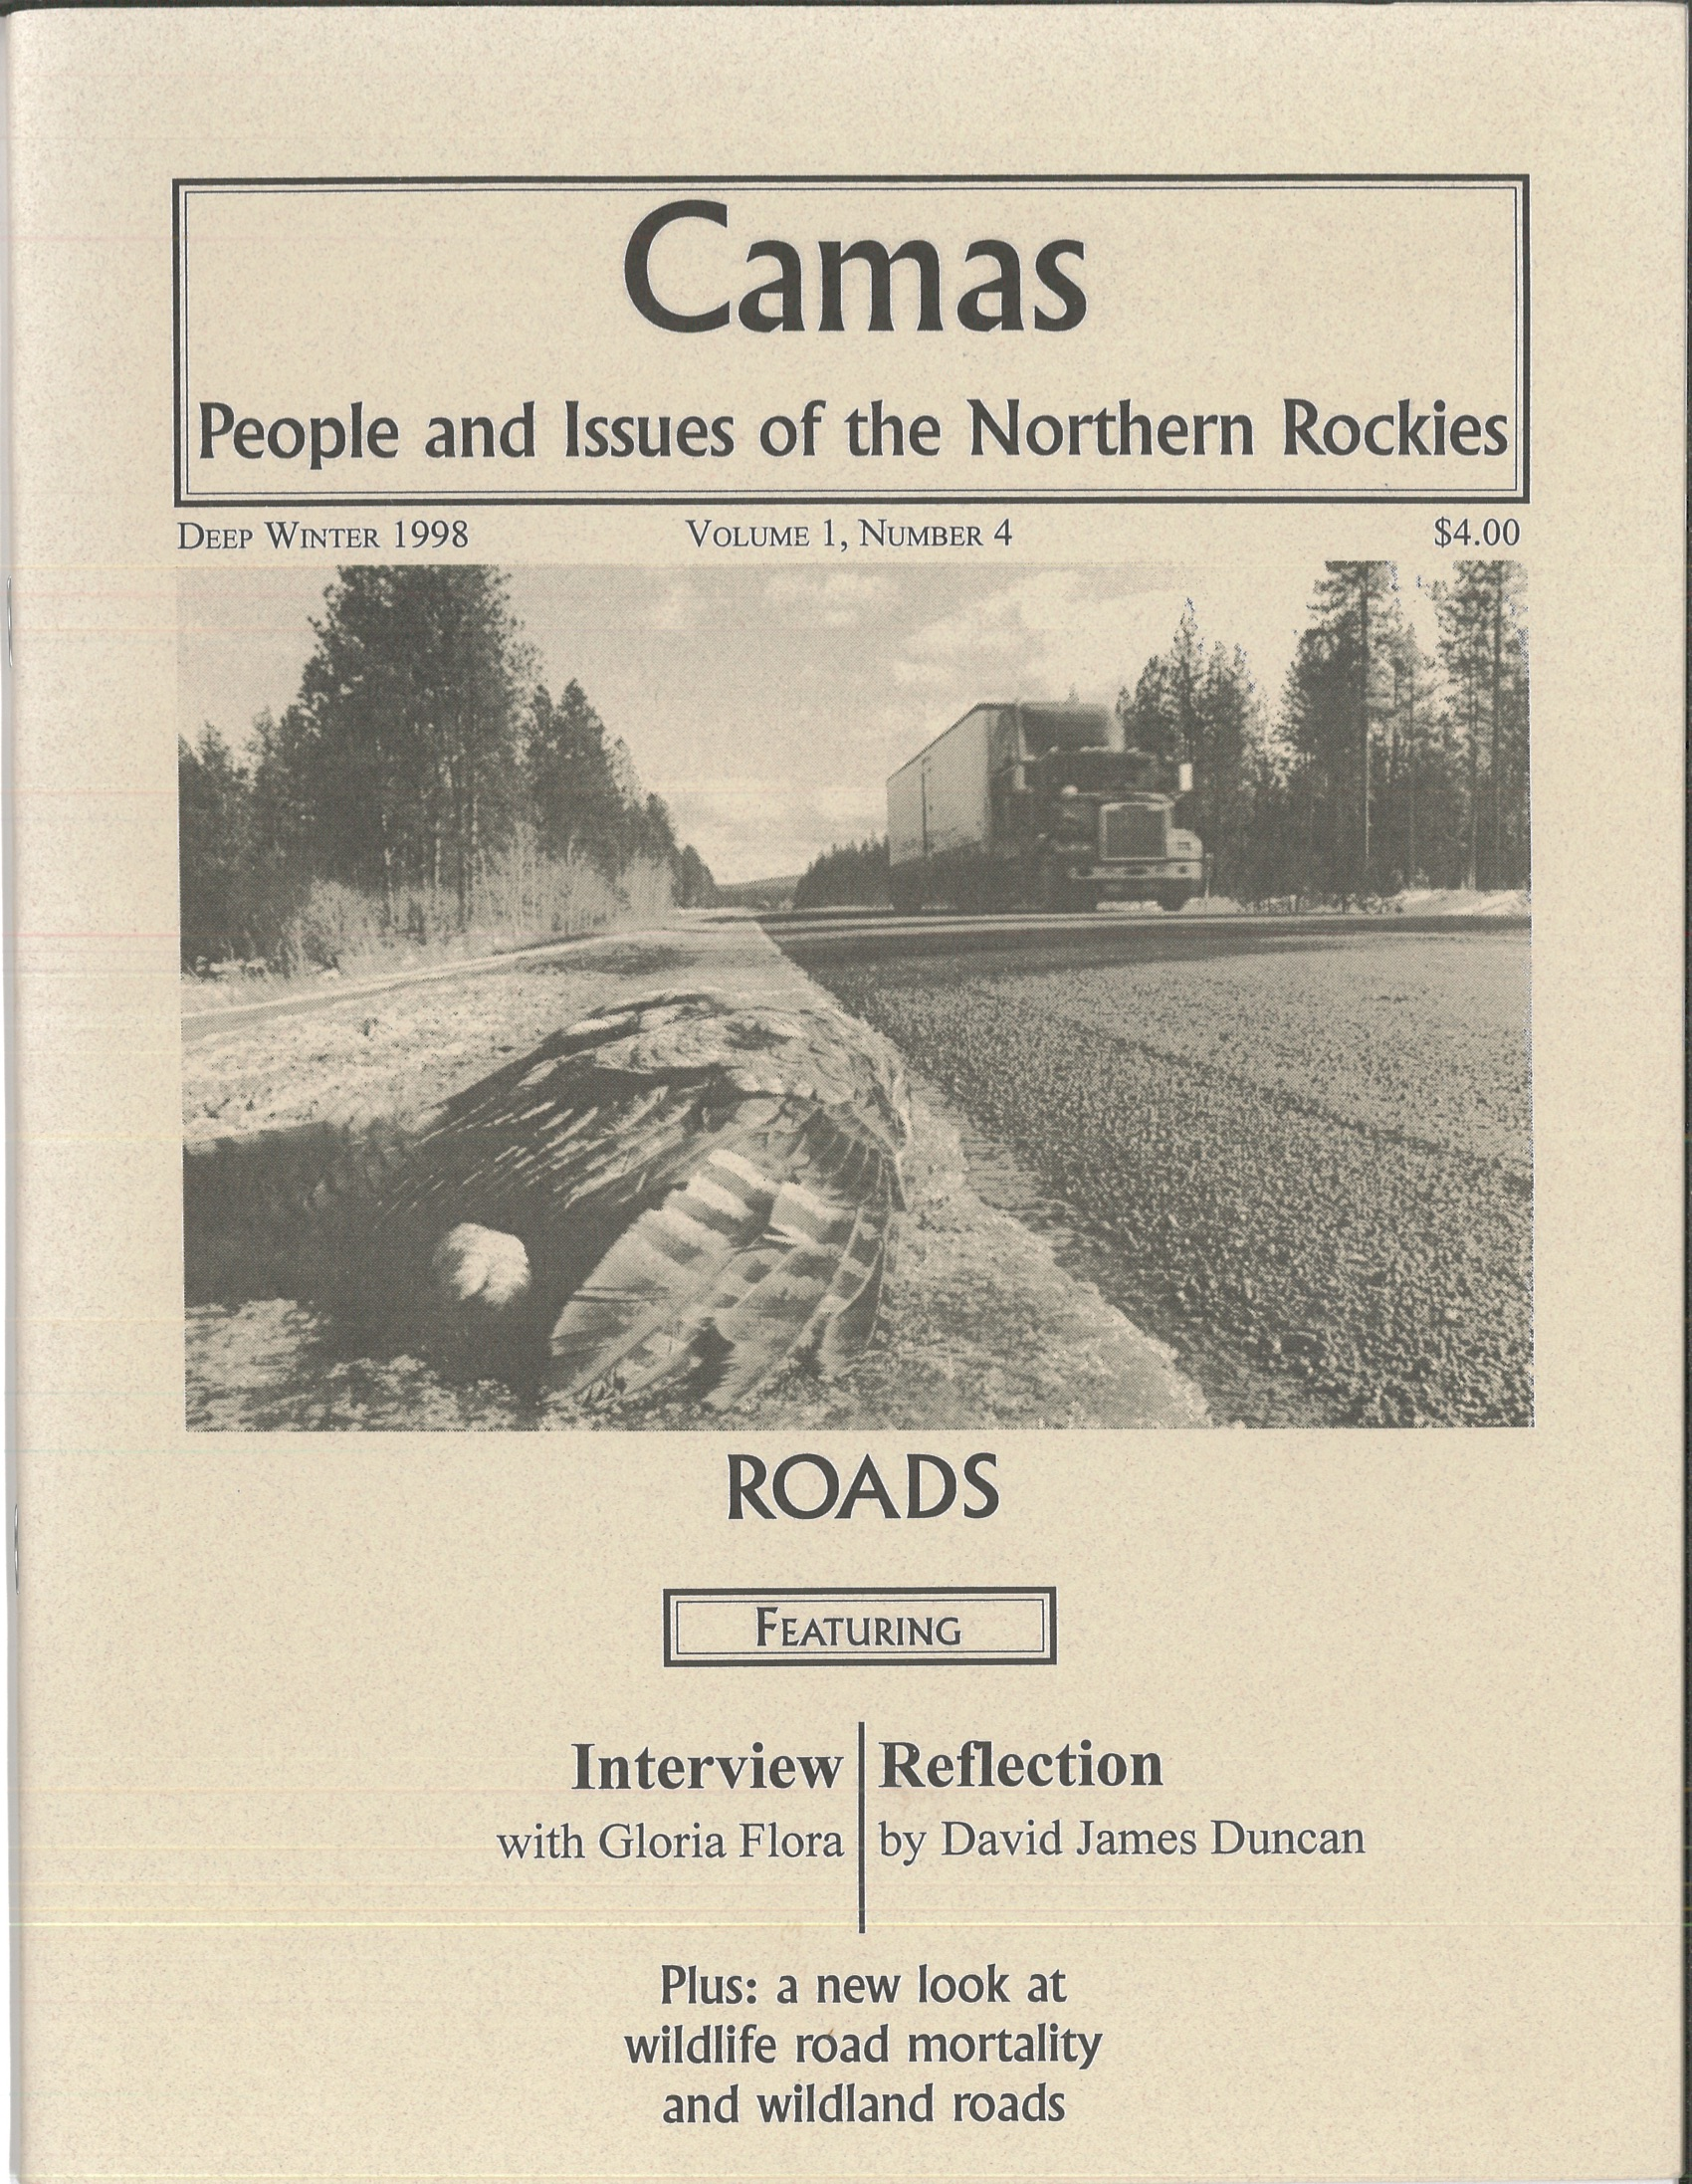 Deep Winter 1998: Roads - Featuring